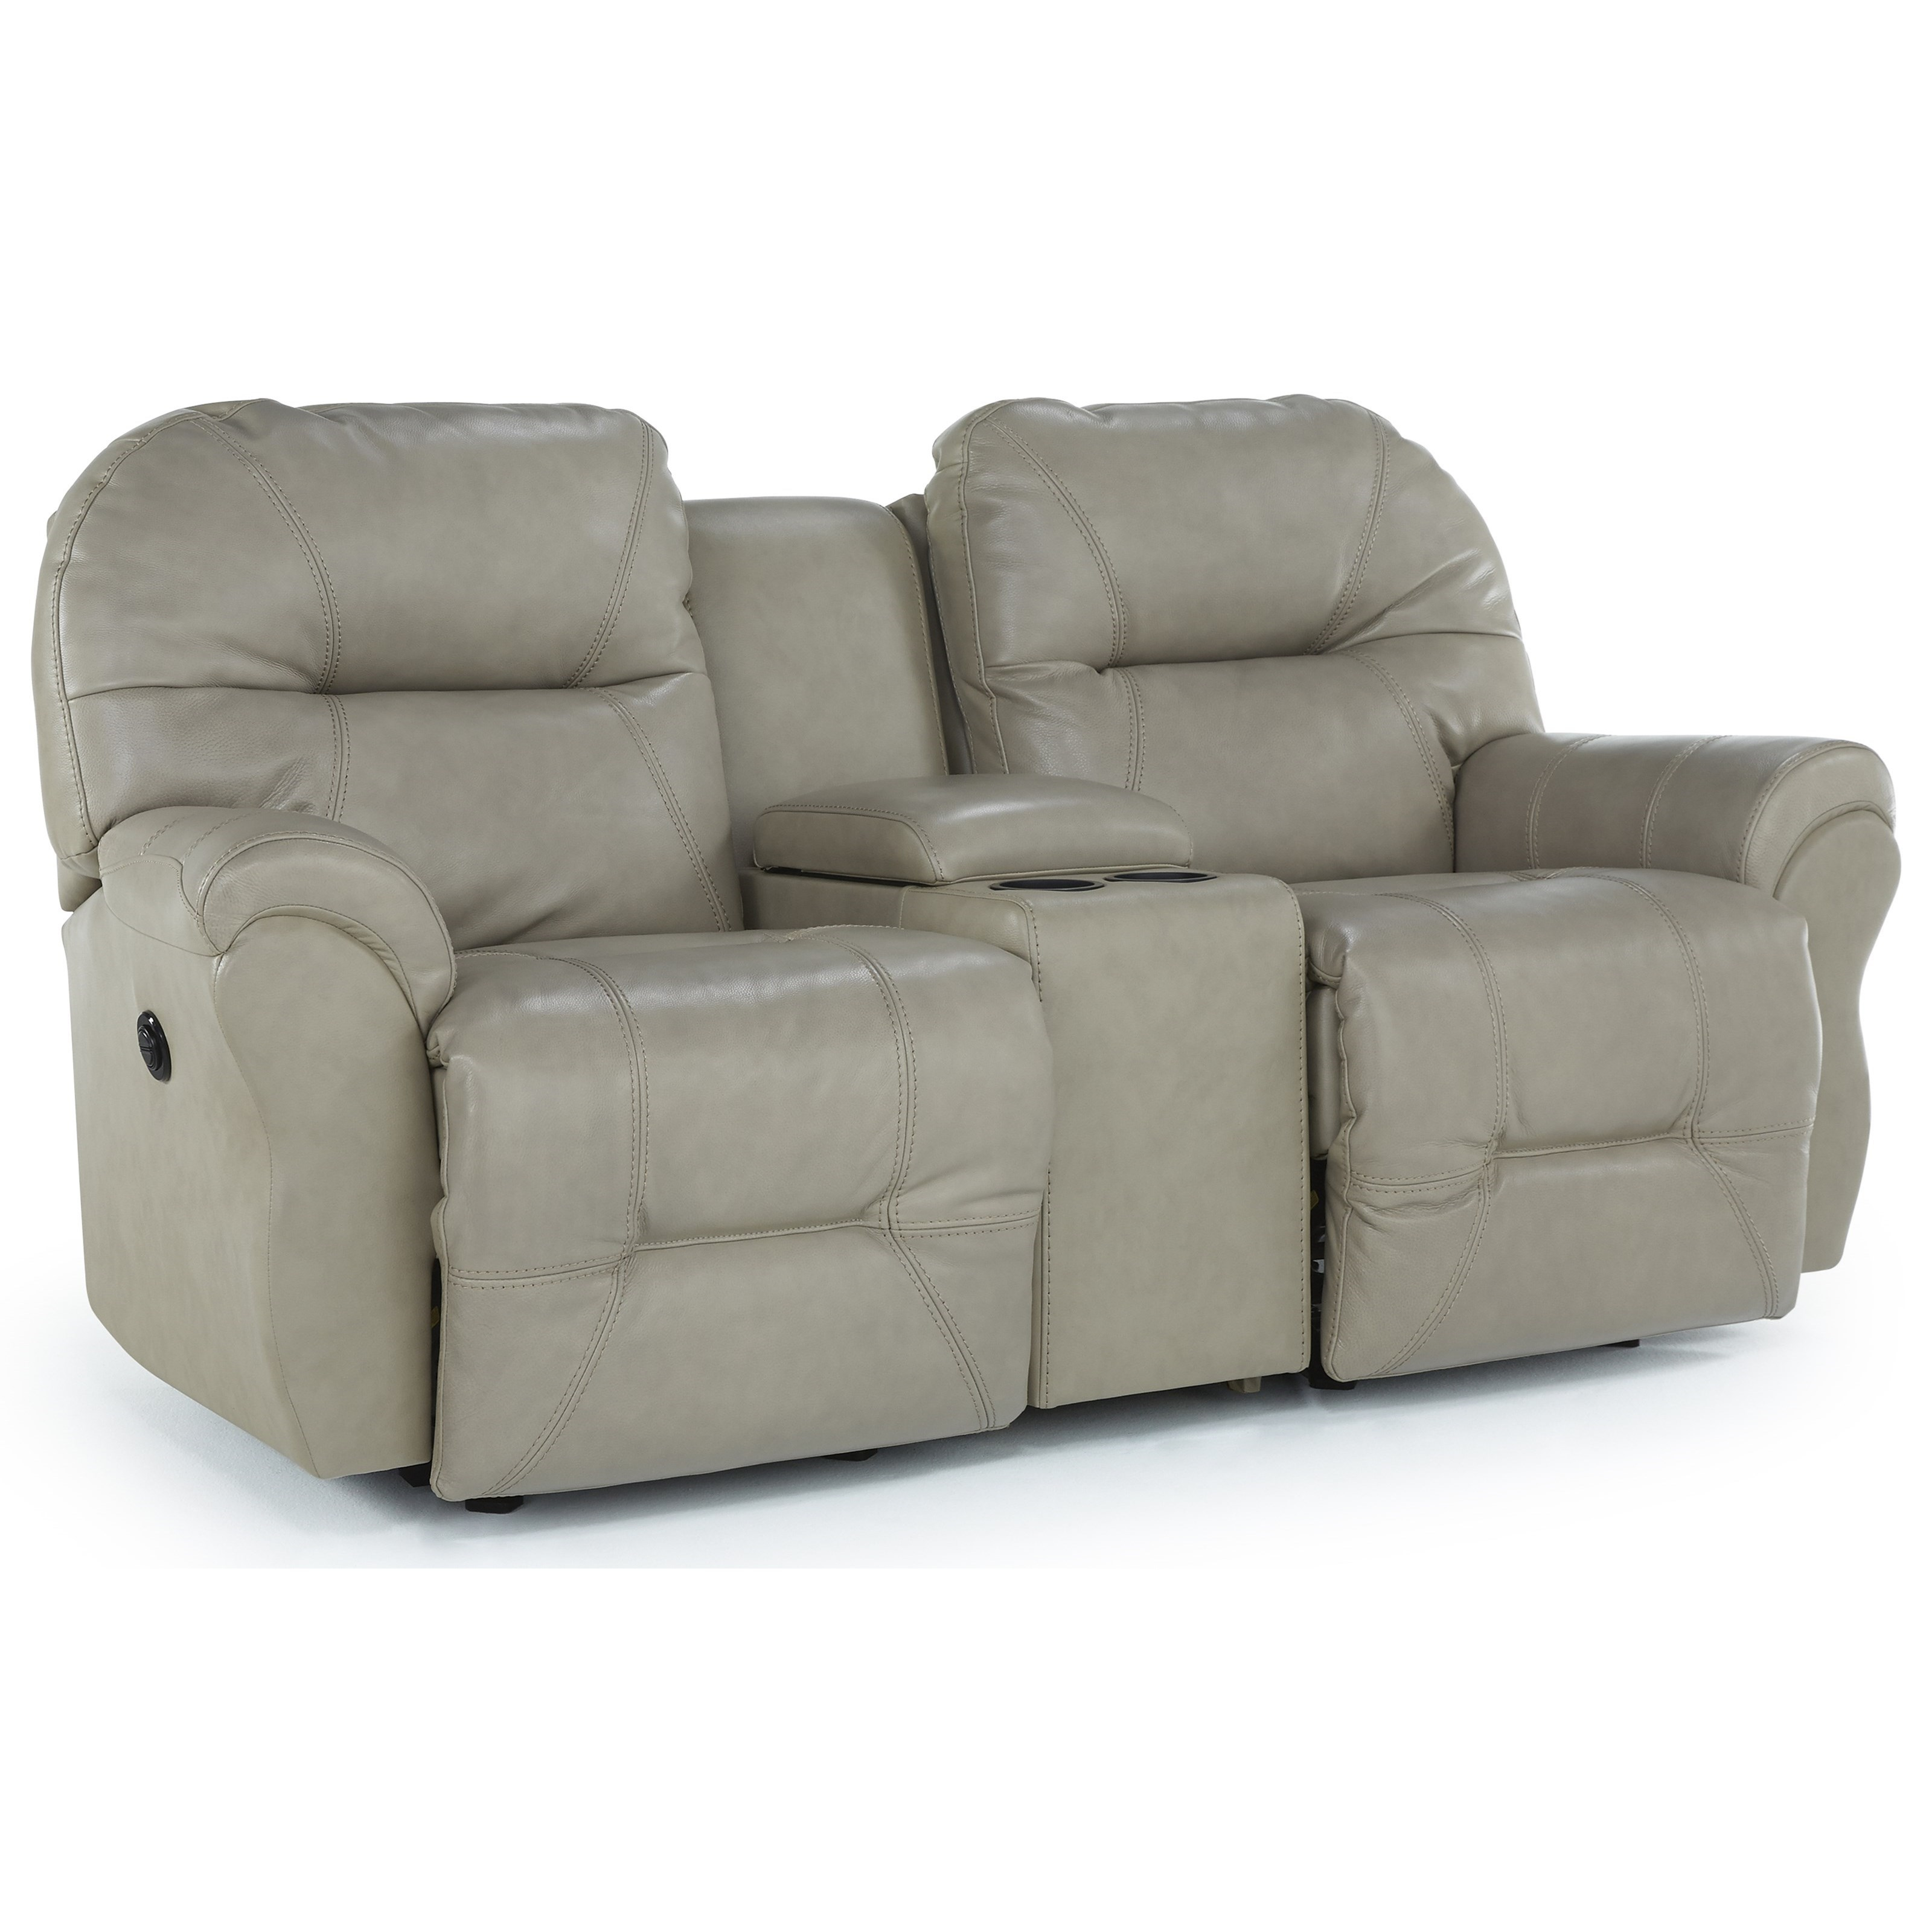 Bodie Power Reclining Loveseat by Best Home Furnishings at Best Home Furnishings